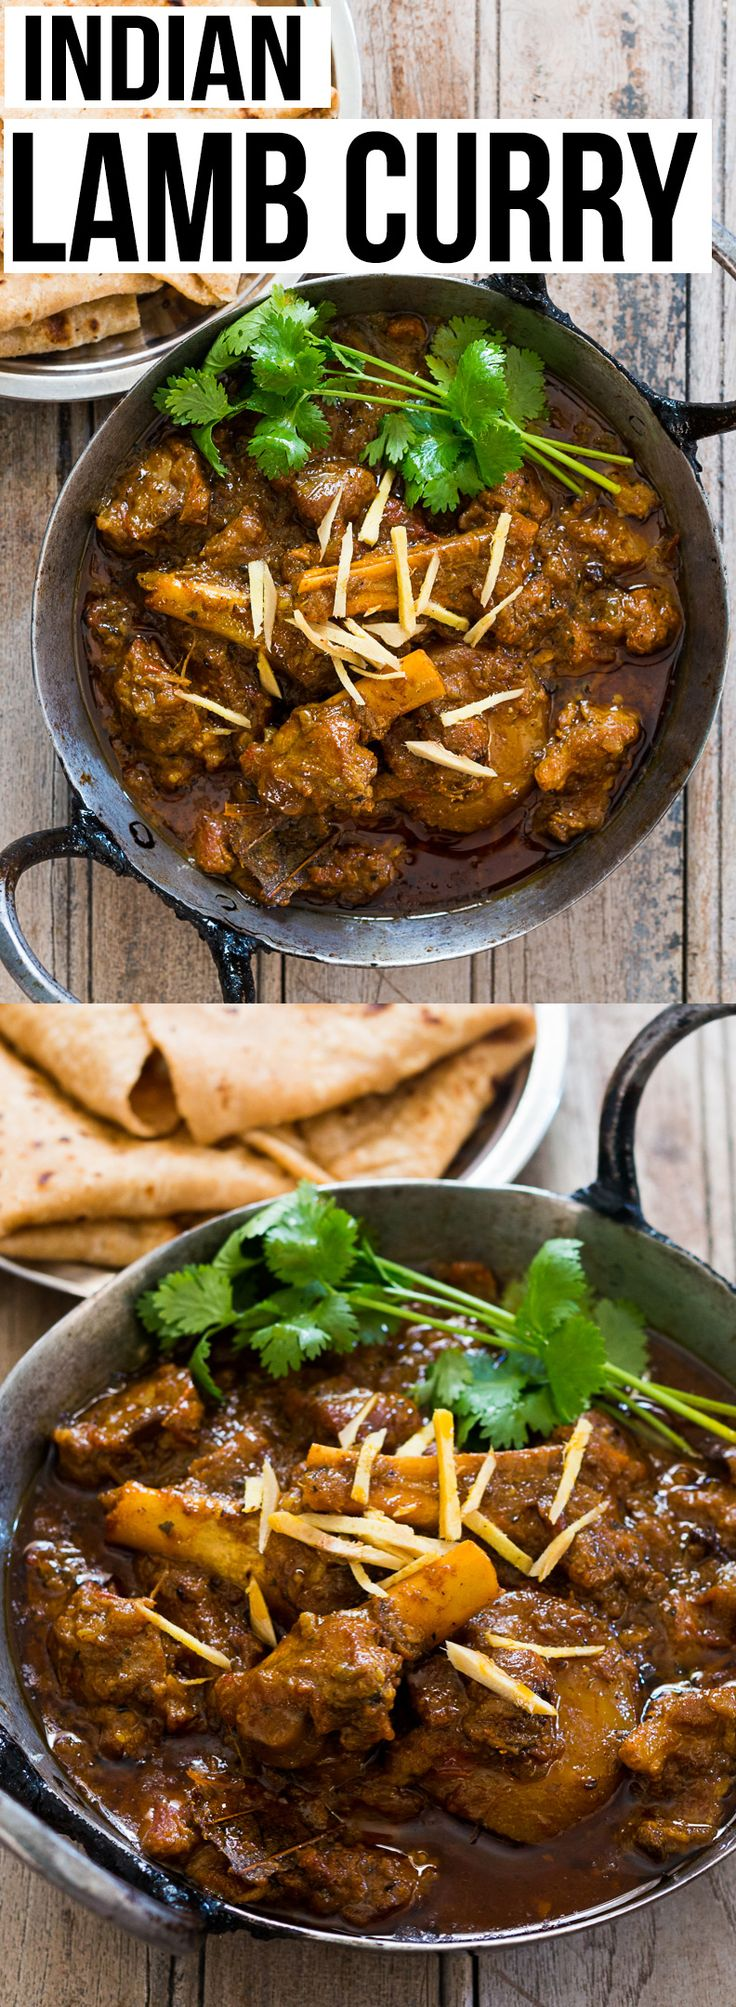 707 best asian food images on pinterest easiest indian mutton curry pressure cooker goat recipesindian food forumfinder Images